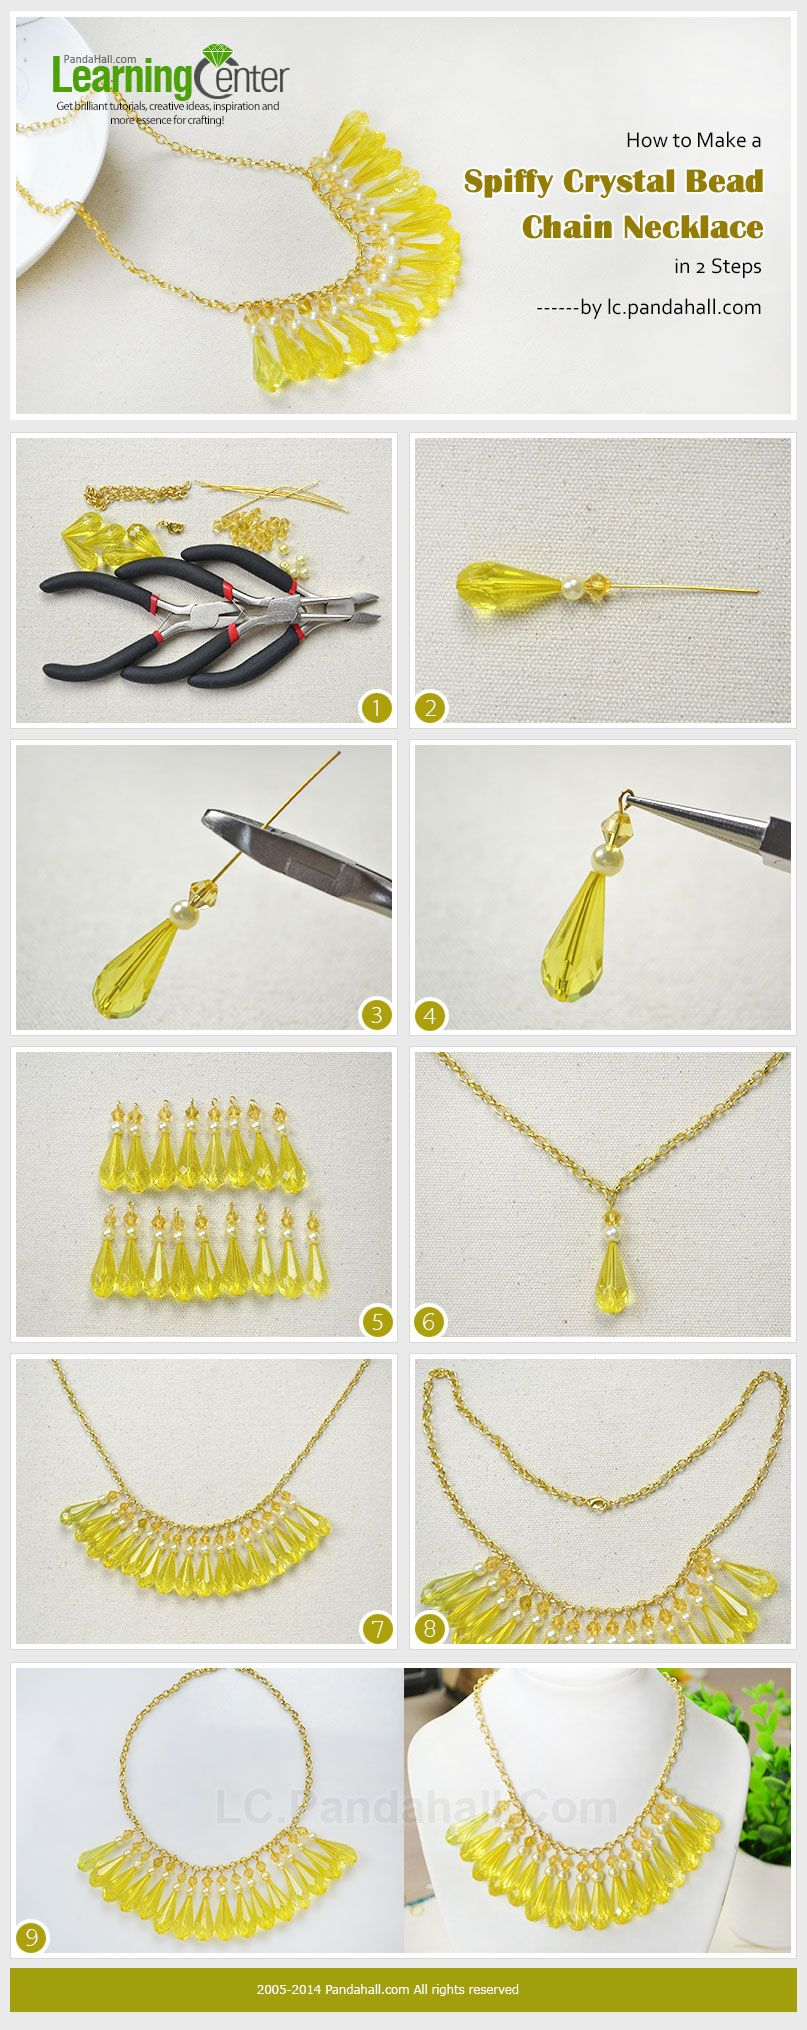 How to Make a Spiffy Crystal Bead Chain Necklace in 2 Steps ...